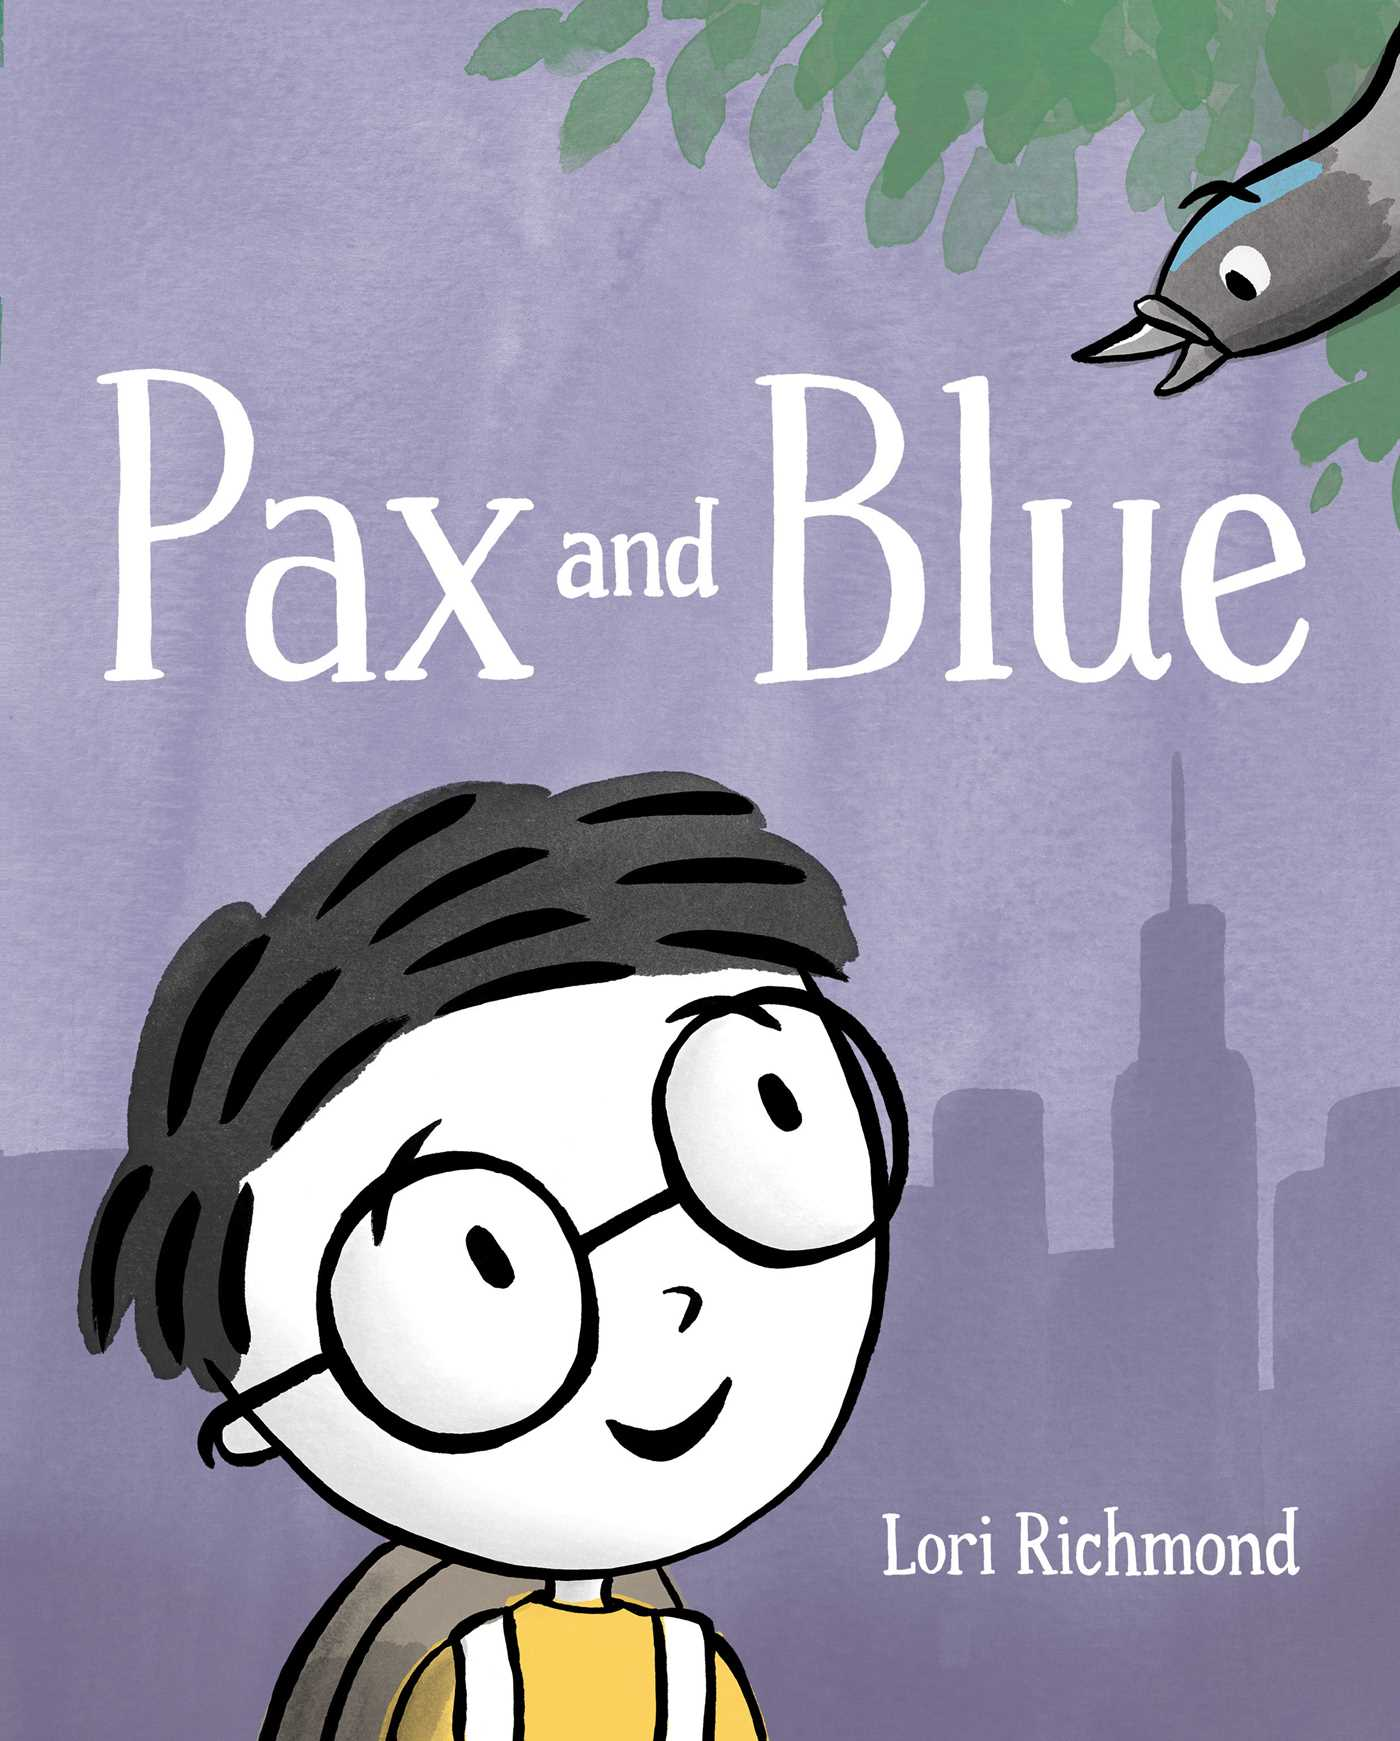 Pax and blue 9781481451338 hr